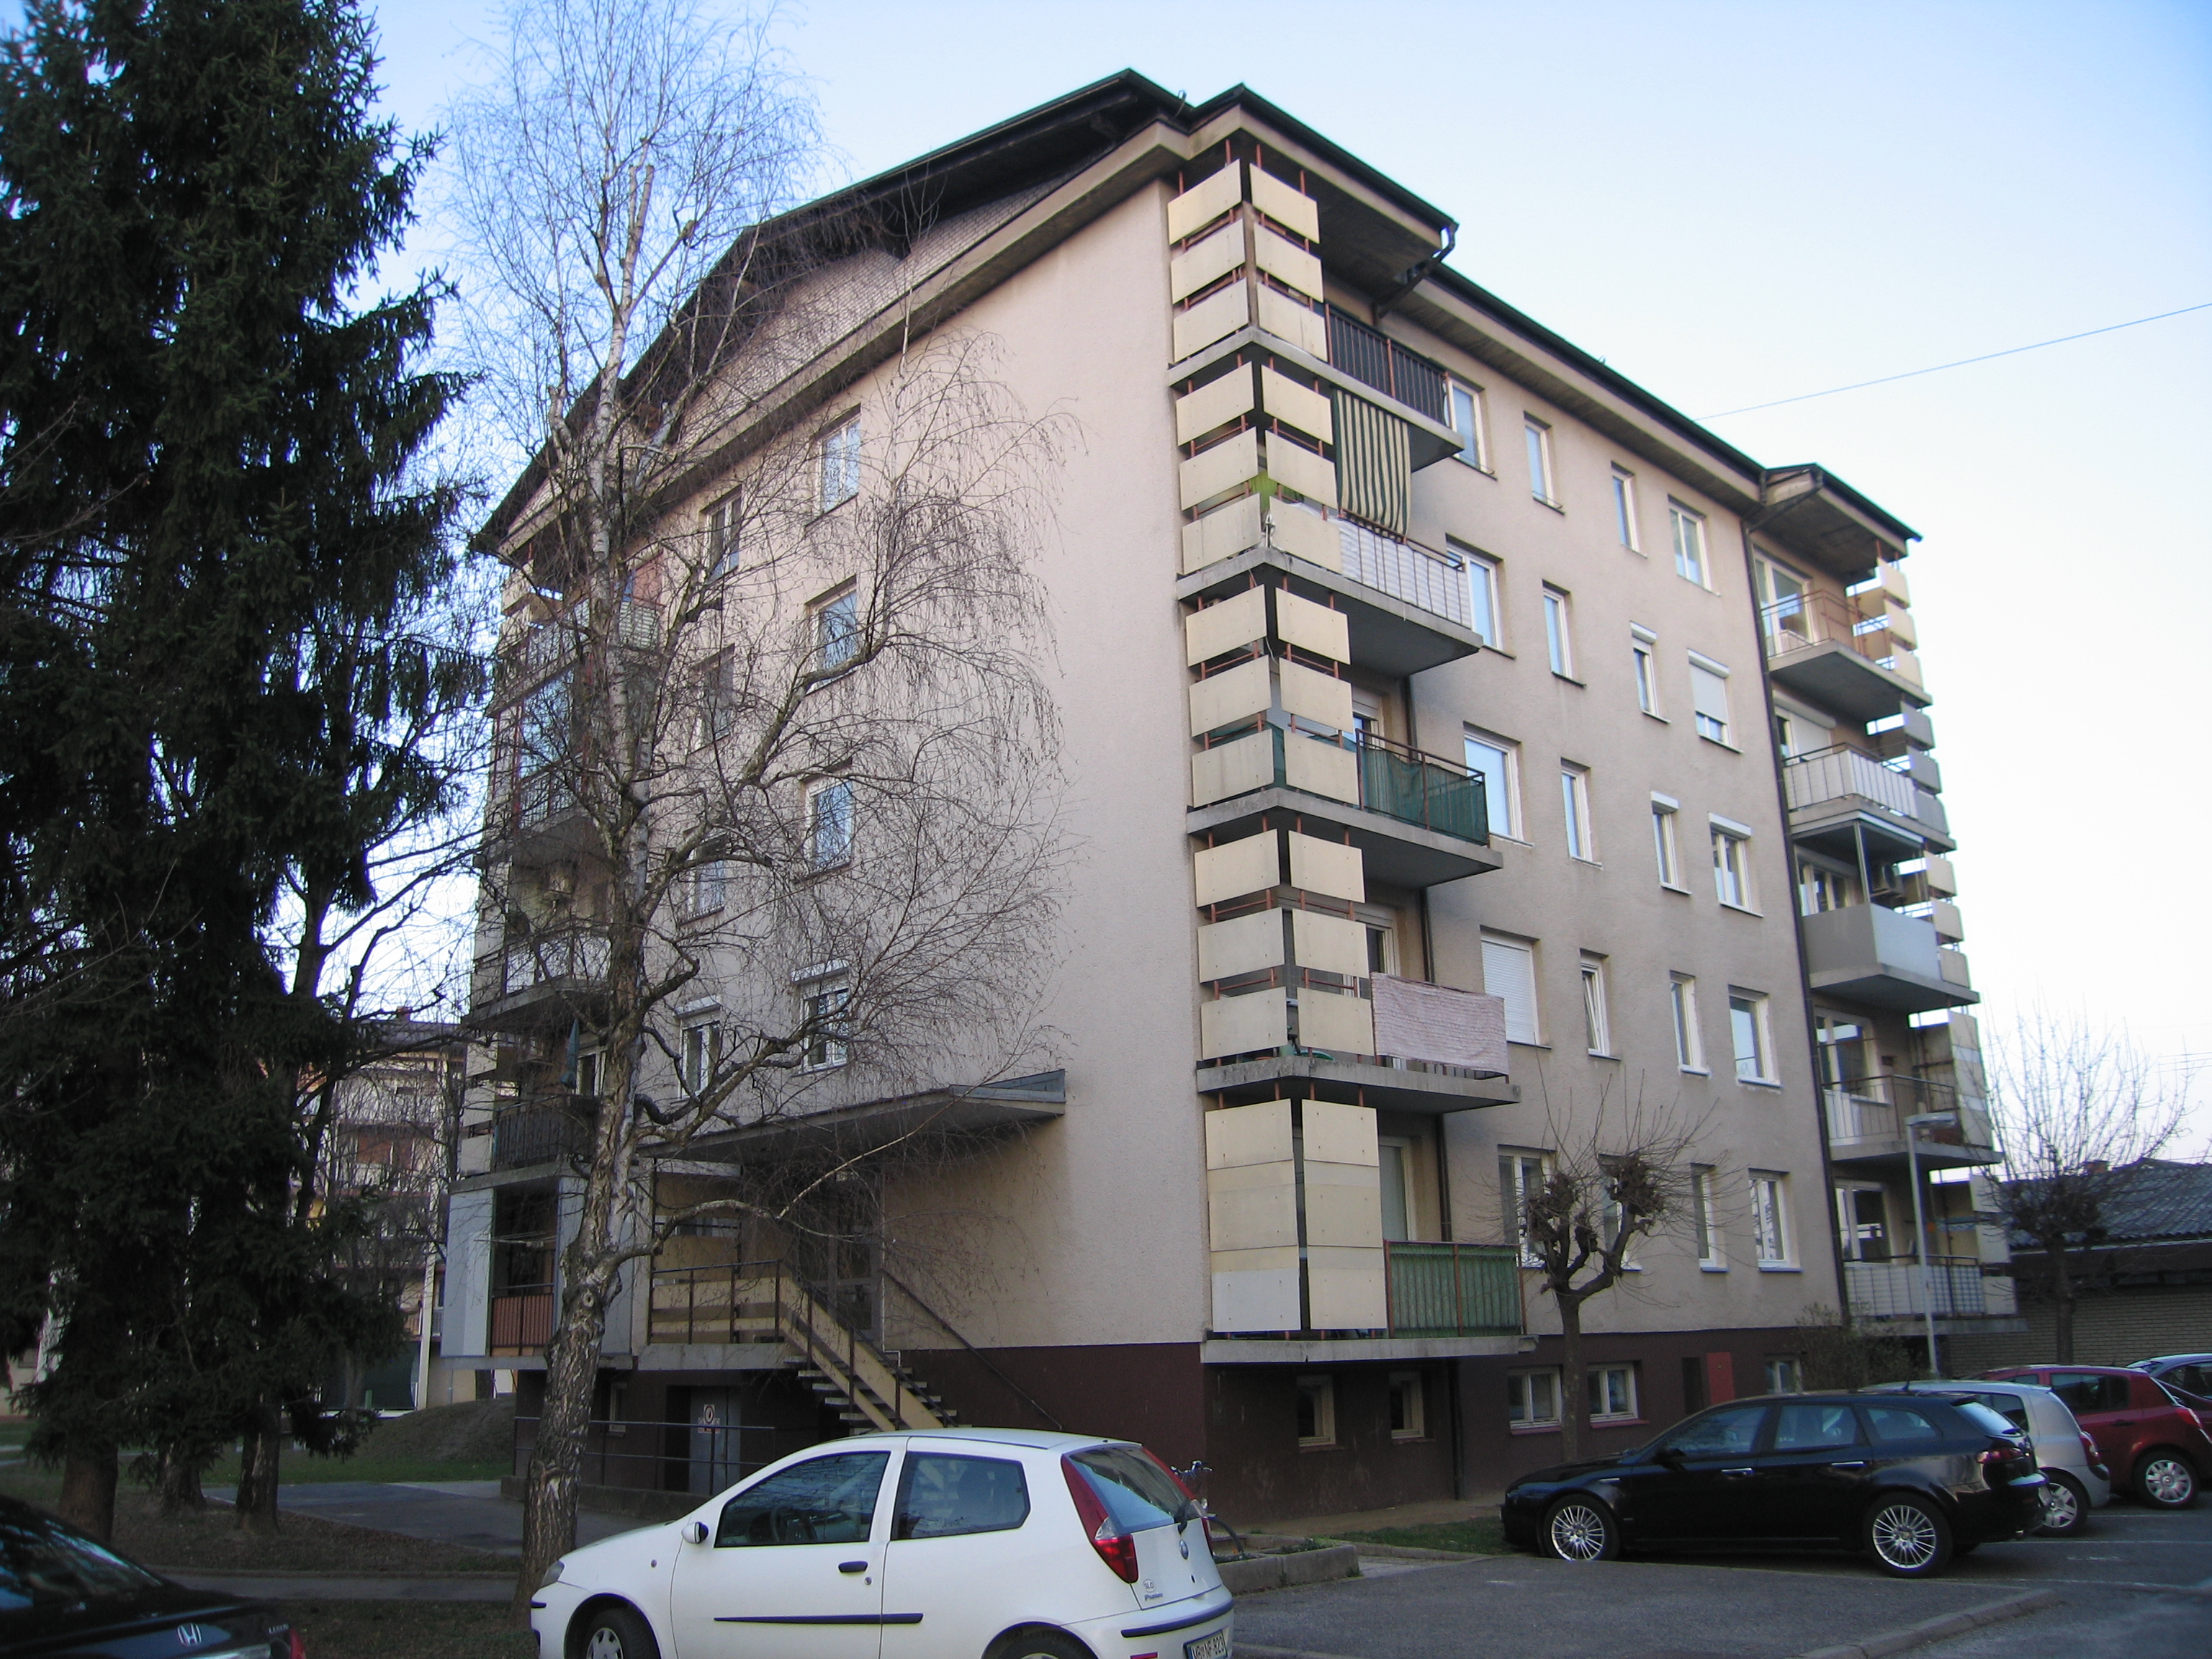 One bedroom apartment for sale in Ljutomer